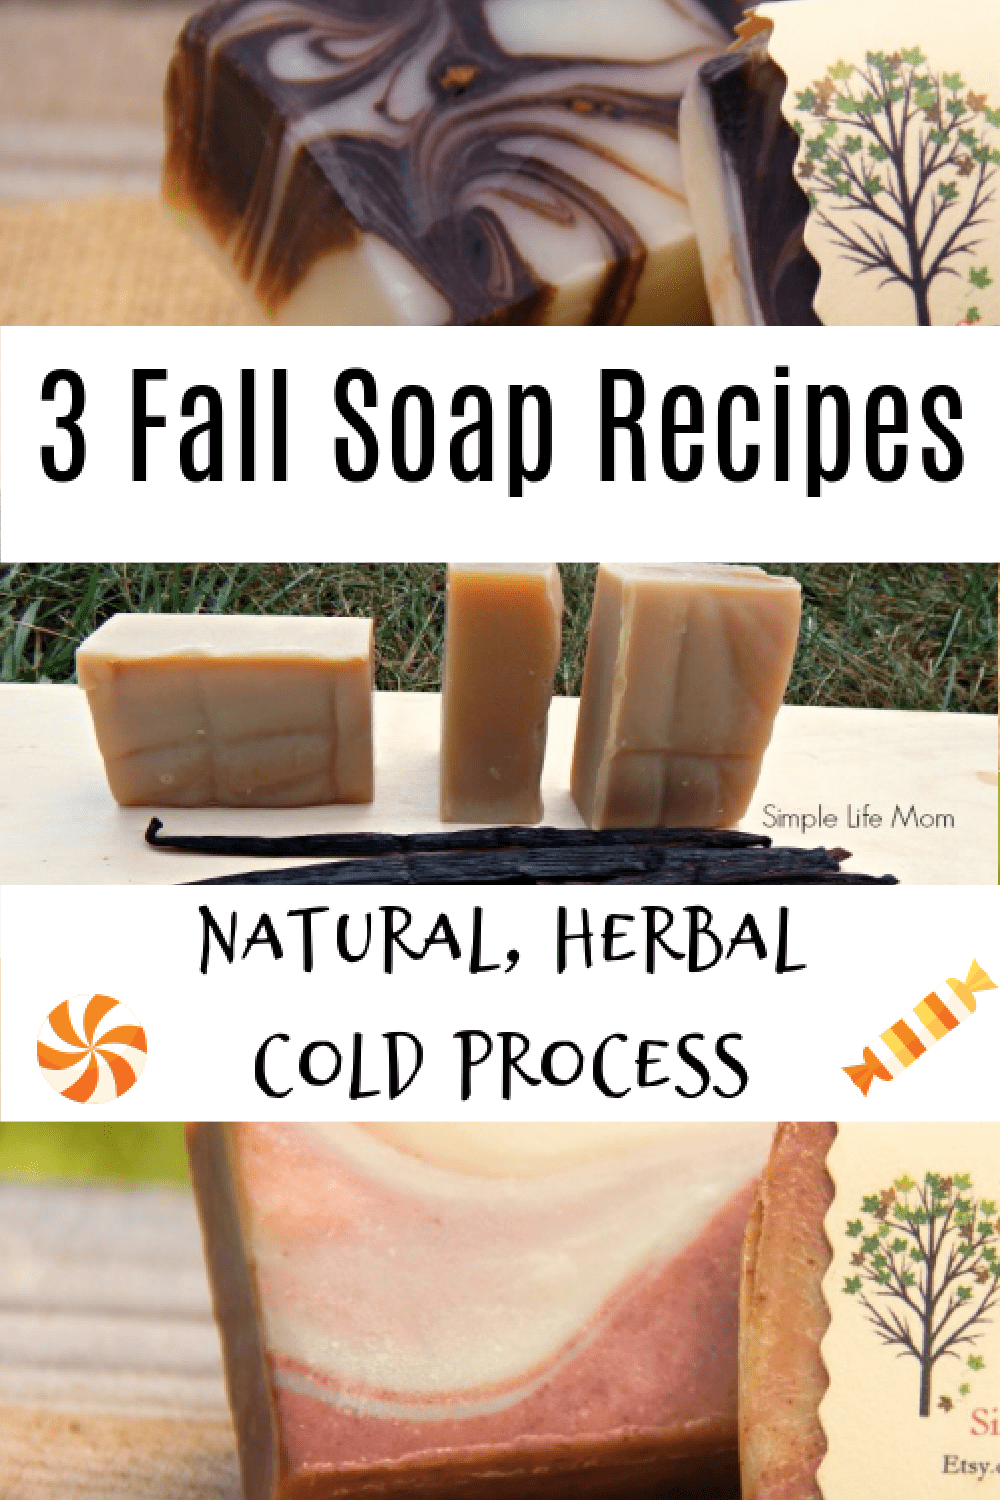 3 Fall Soap Recipes